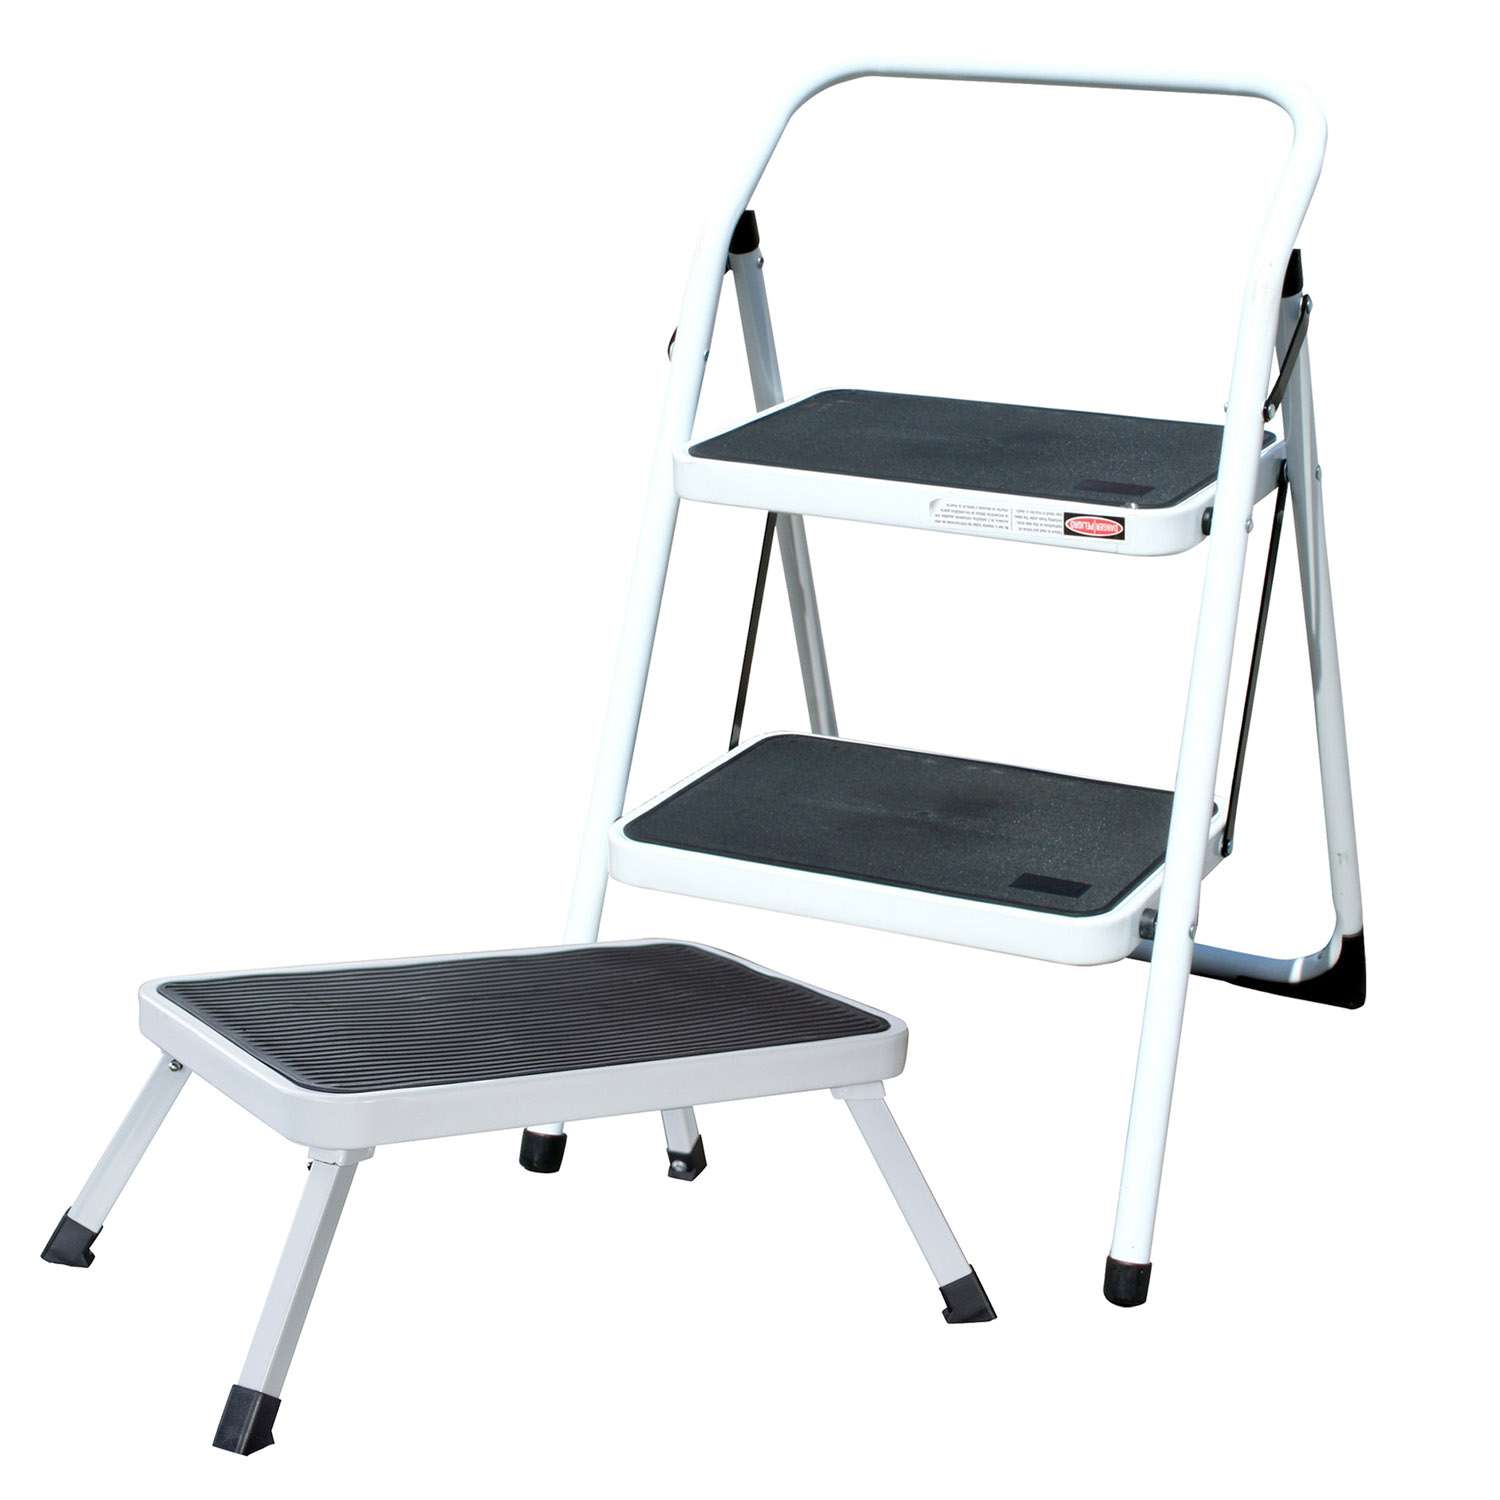 2-Step Utility Stool With 1-Step Folding Platform Stool Set